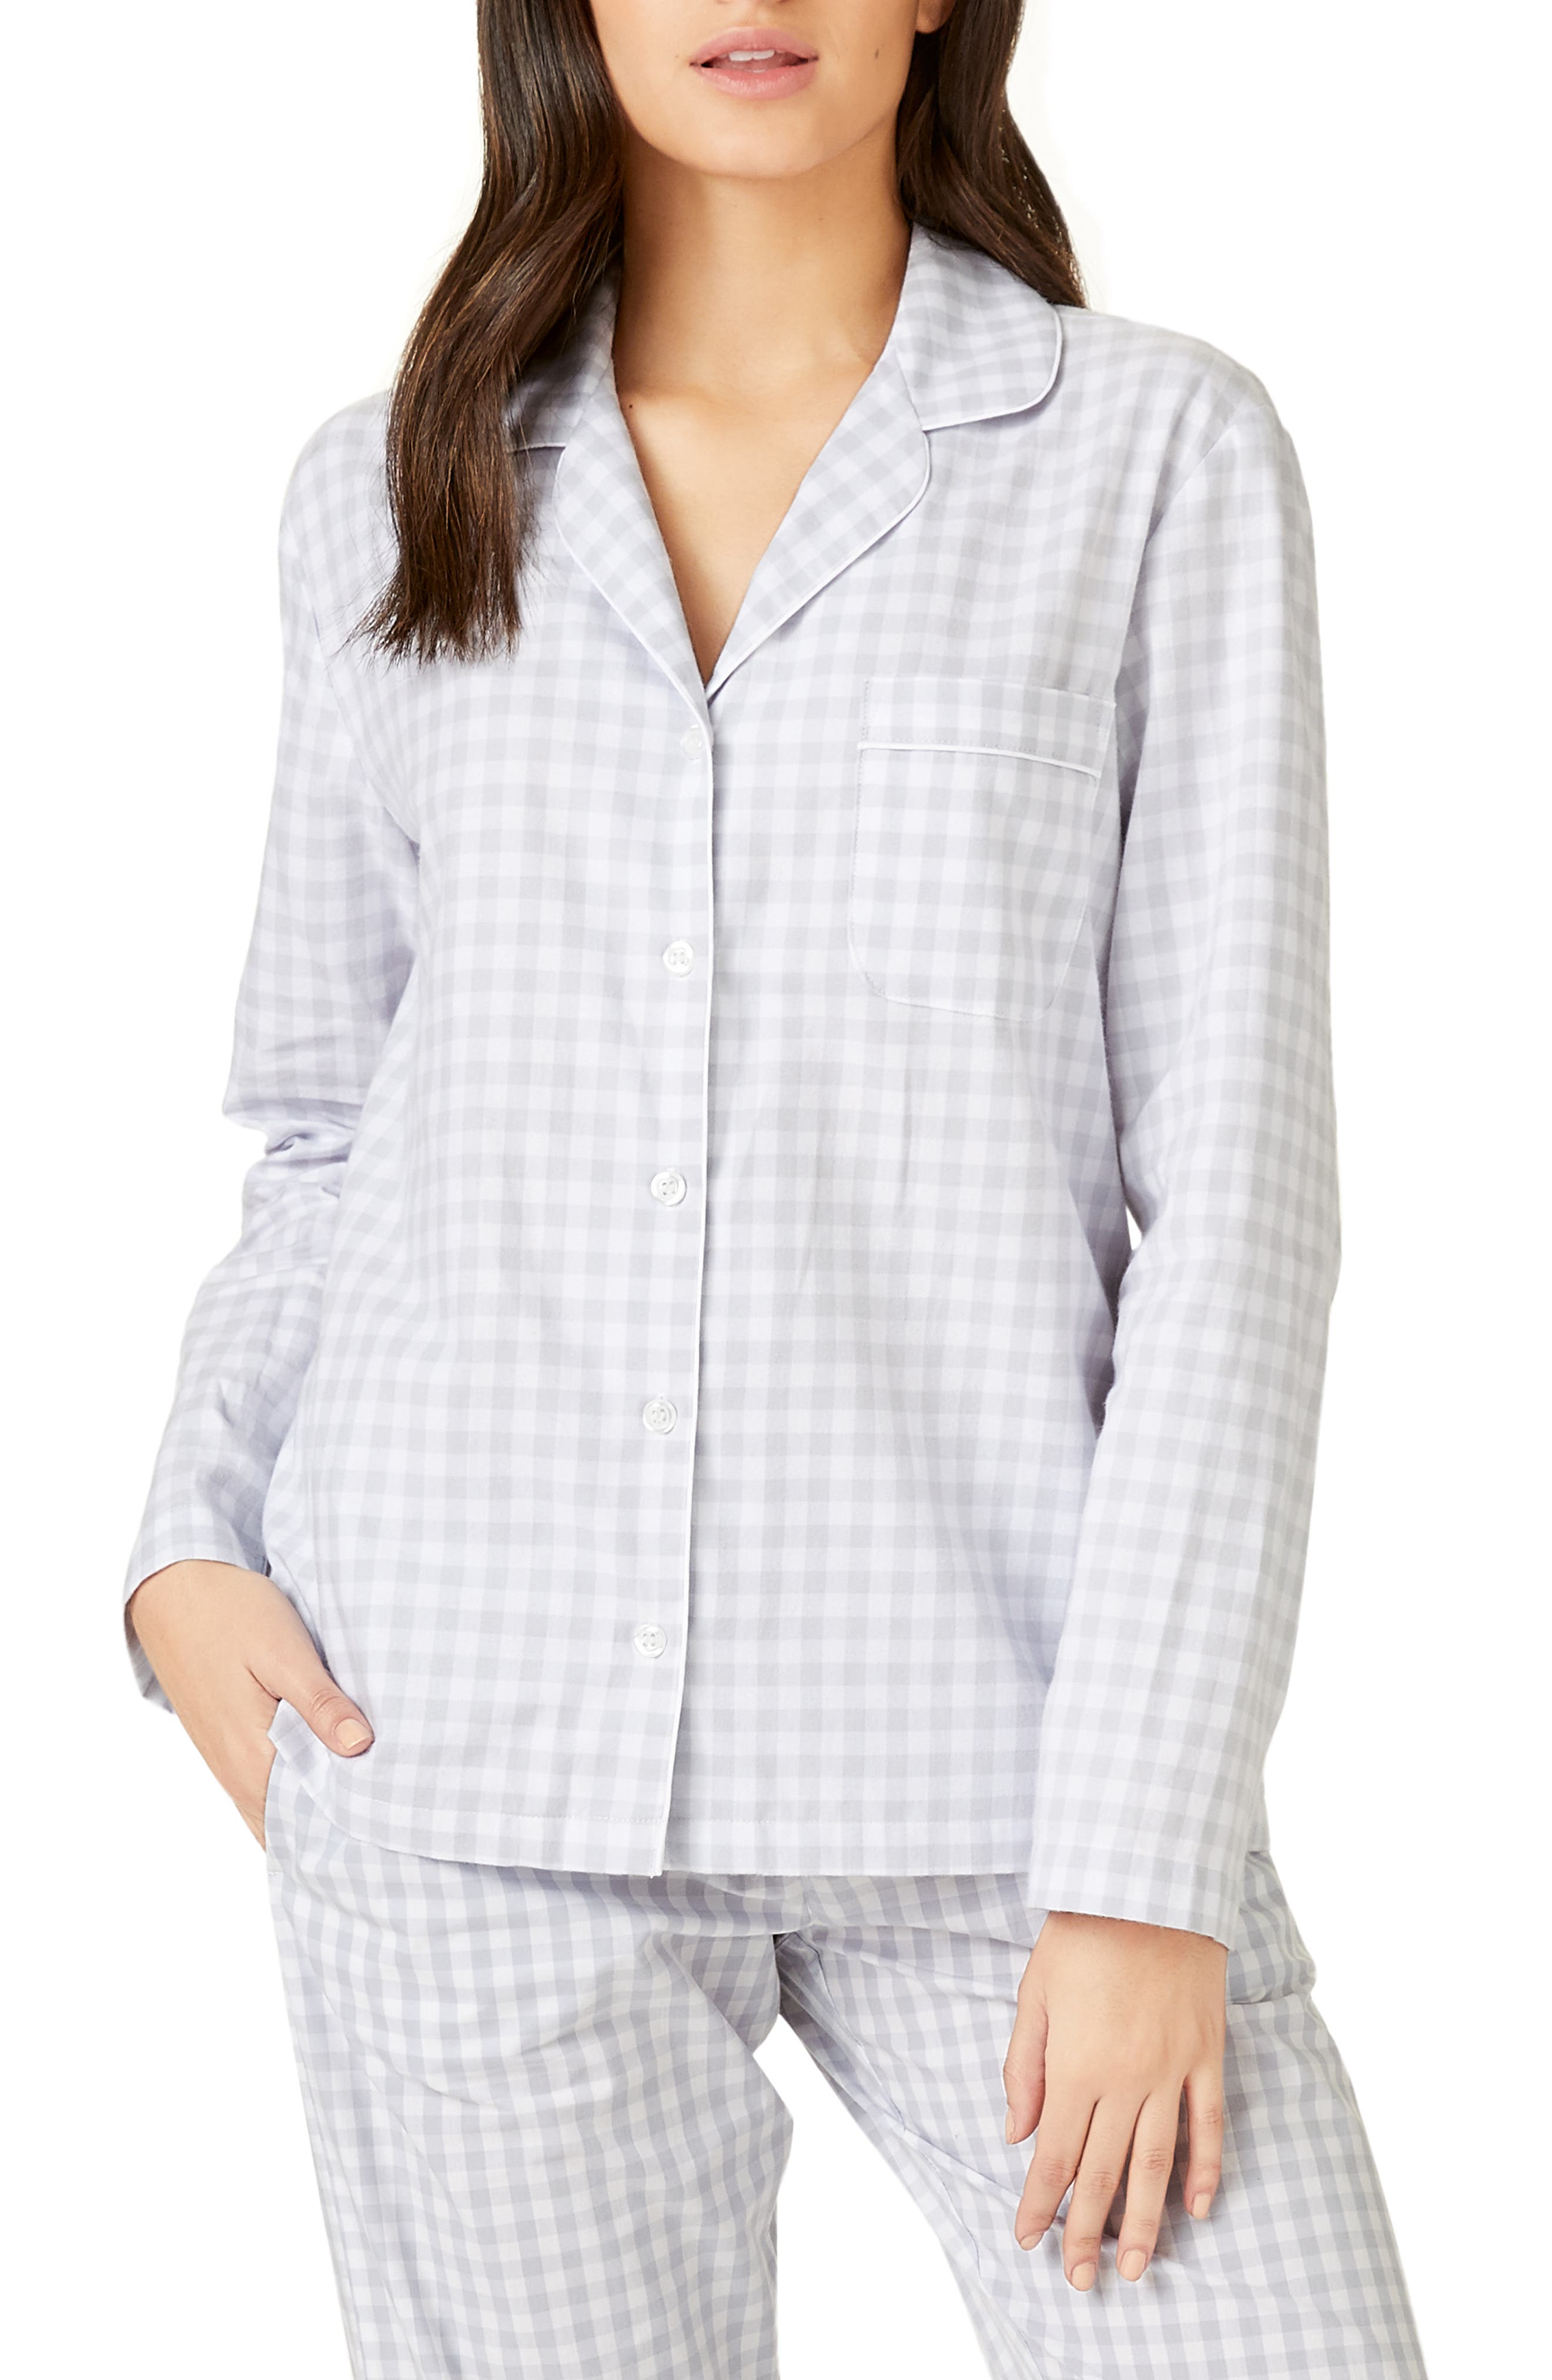 Cotton Flannel Pajama Top by The White Company